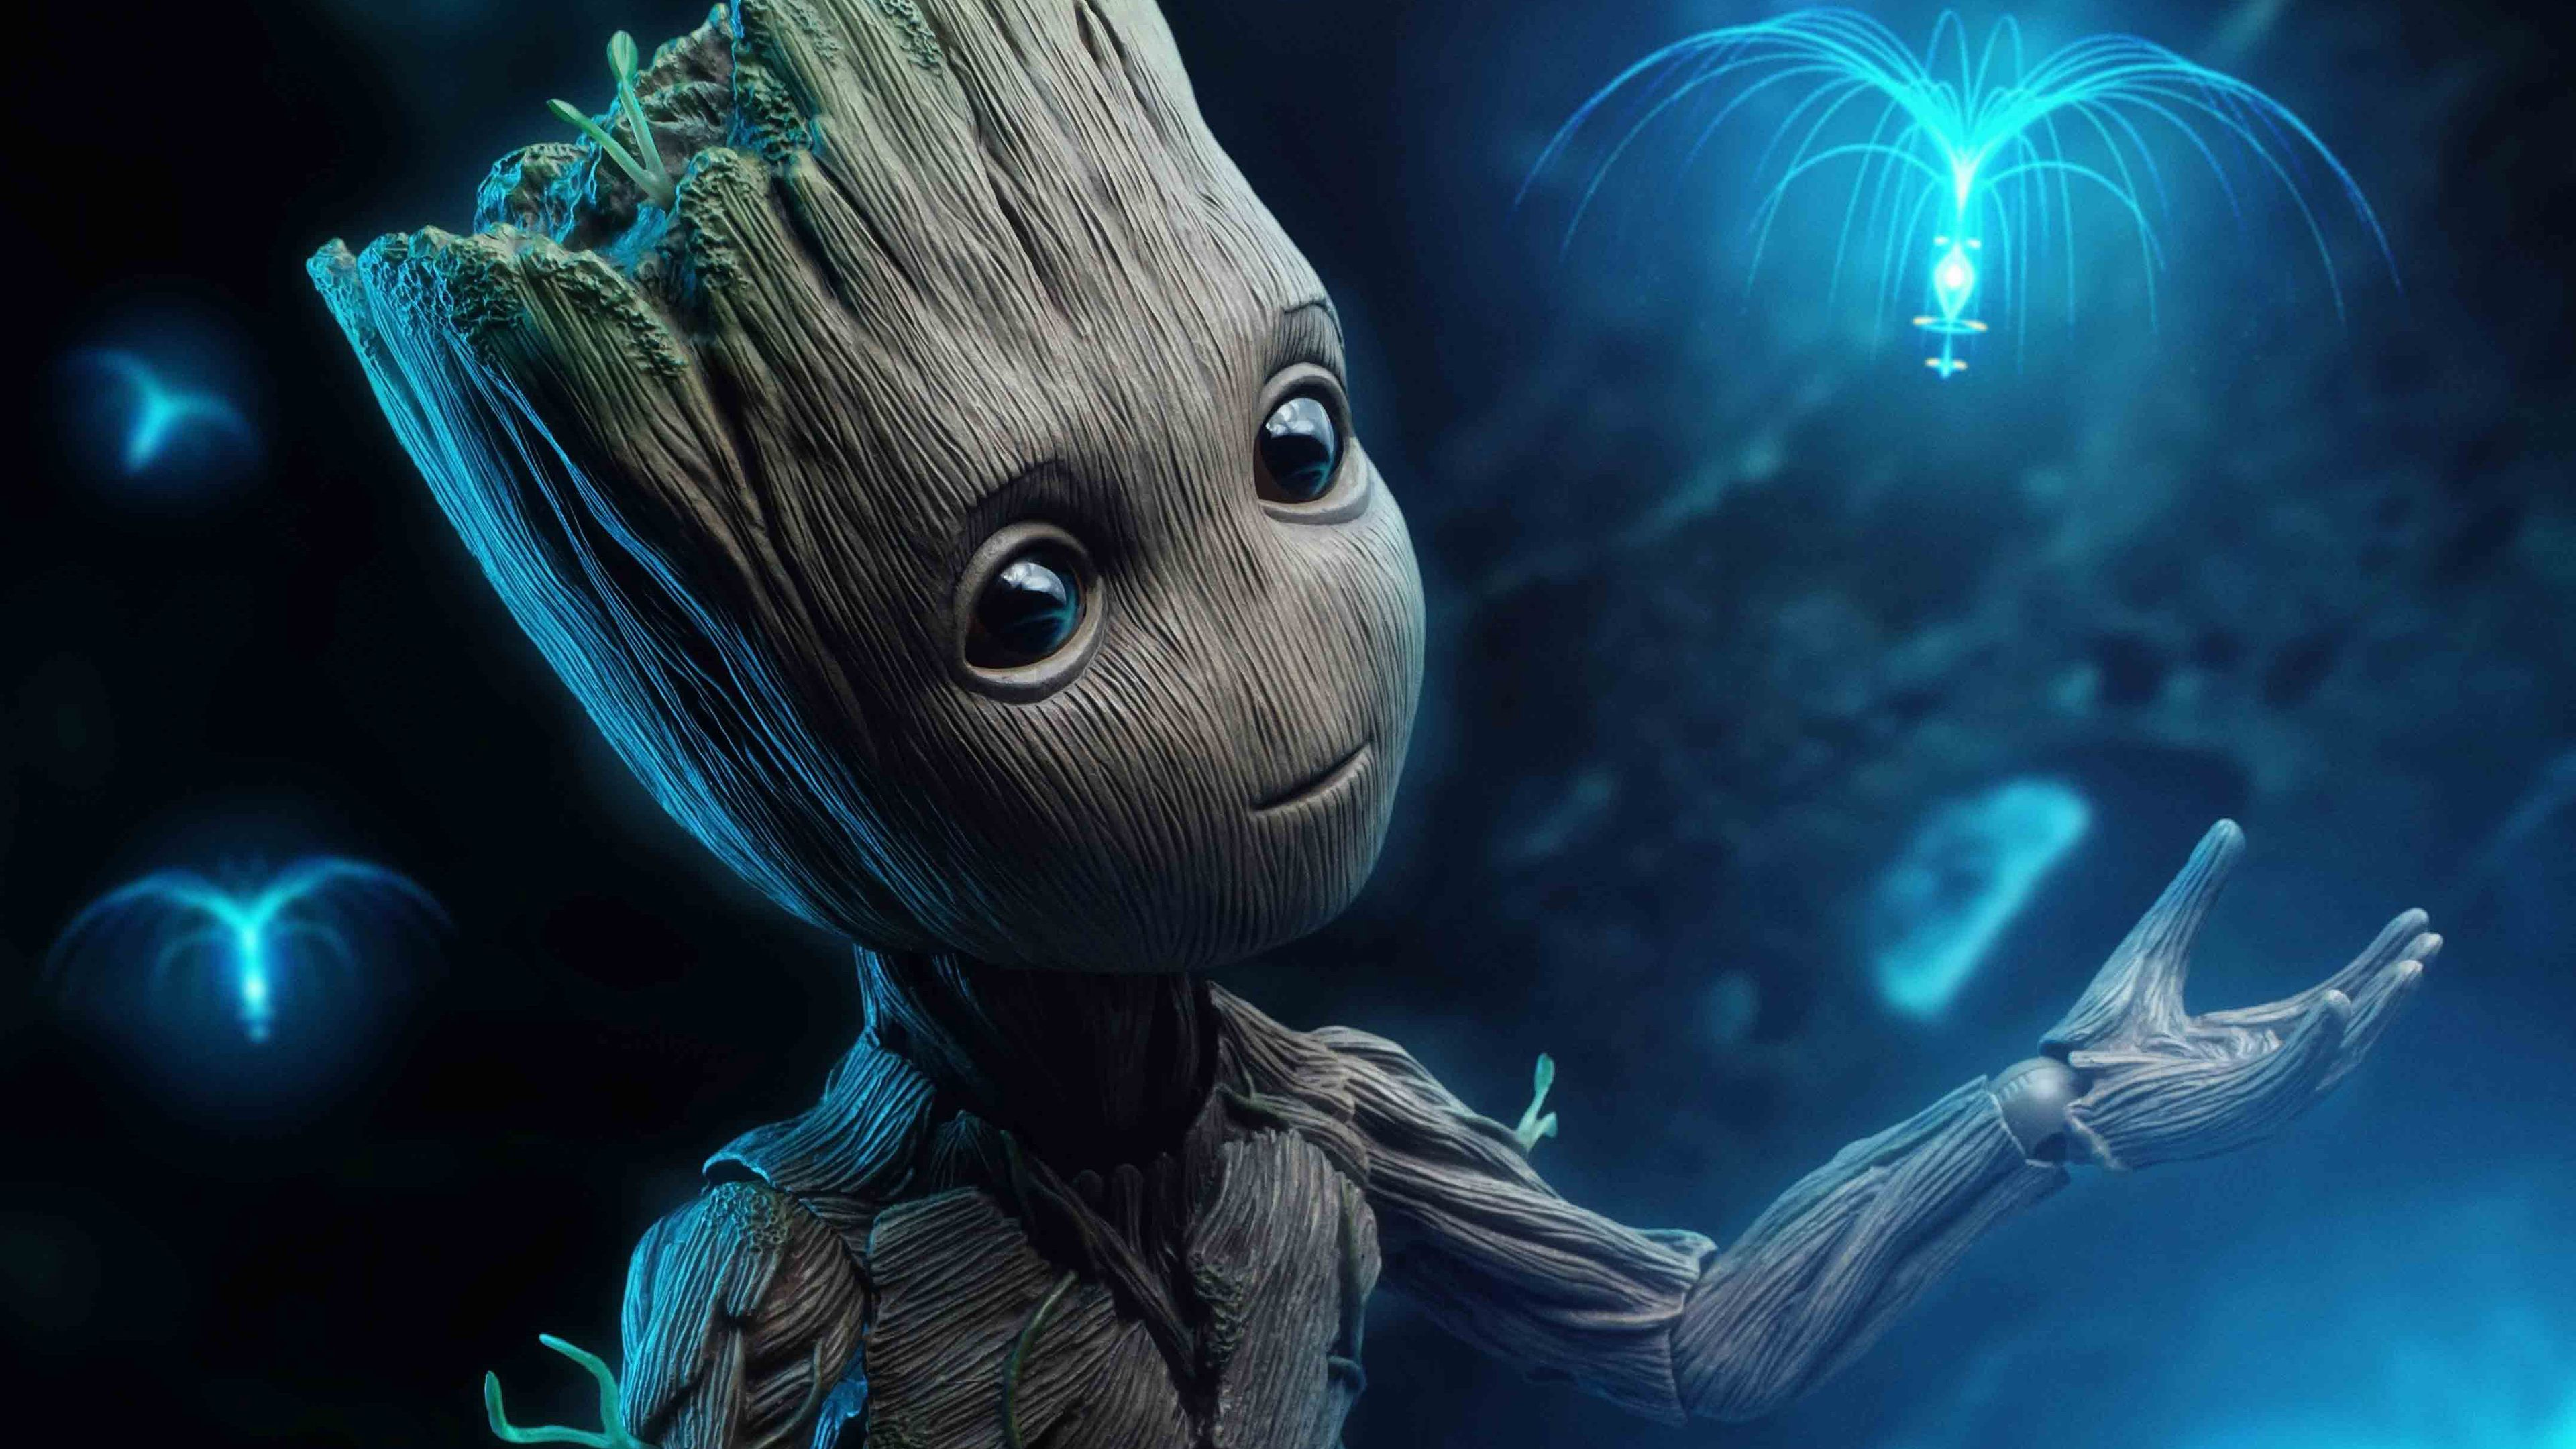 Wallpaper 4k Baby Groot 4k 4k Wallpapers Baby Groot Wallpapers